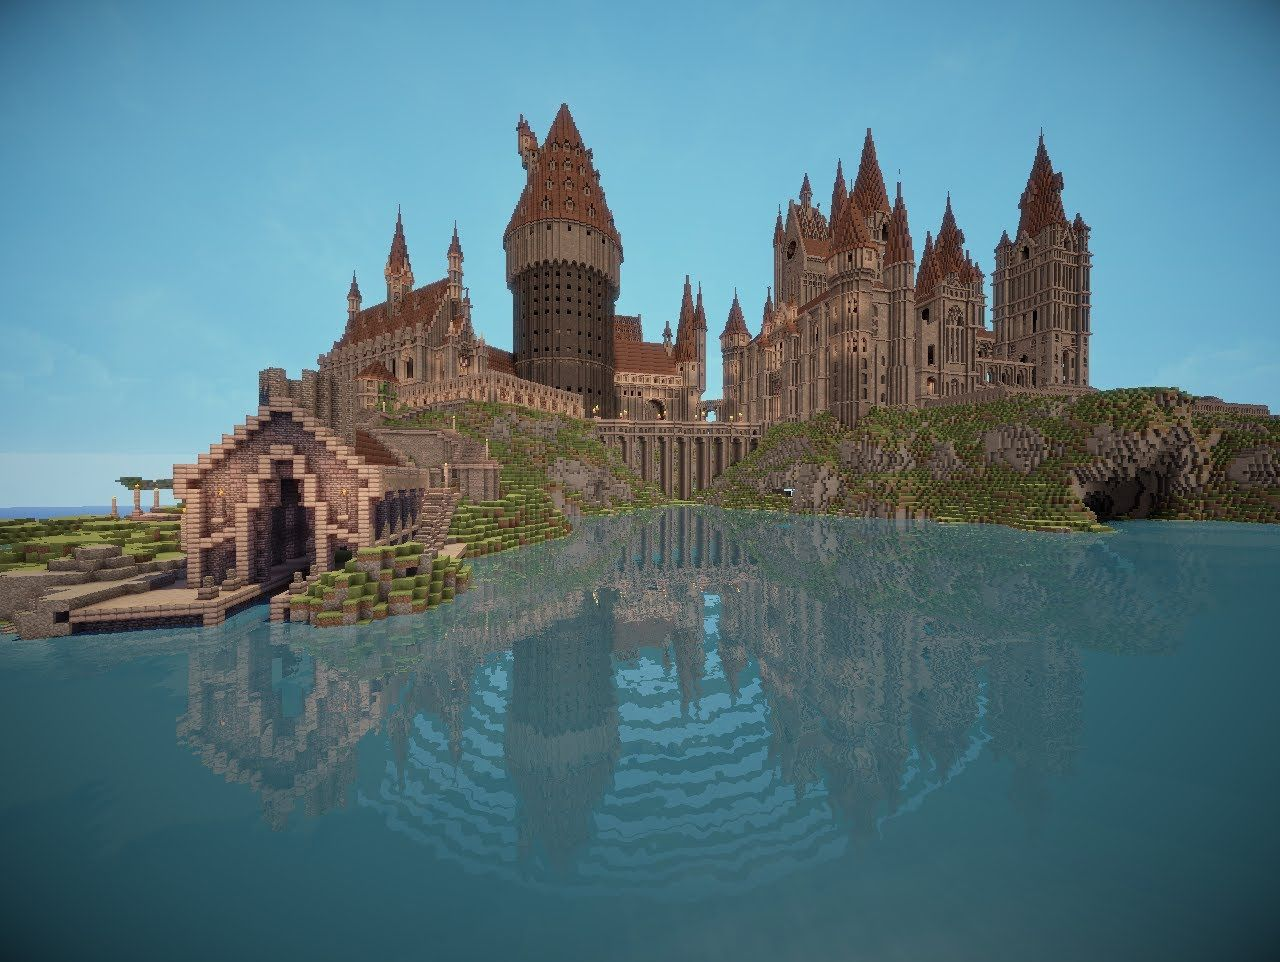 The Best Hogwarts Ever Made In Minecraft Mrkaspersson Xd Its So Awesome Minecraft Castle Blueprints Hogwarts Minecraft Minecraft Castle